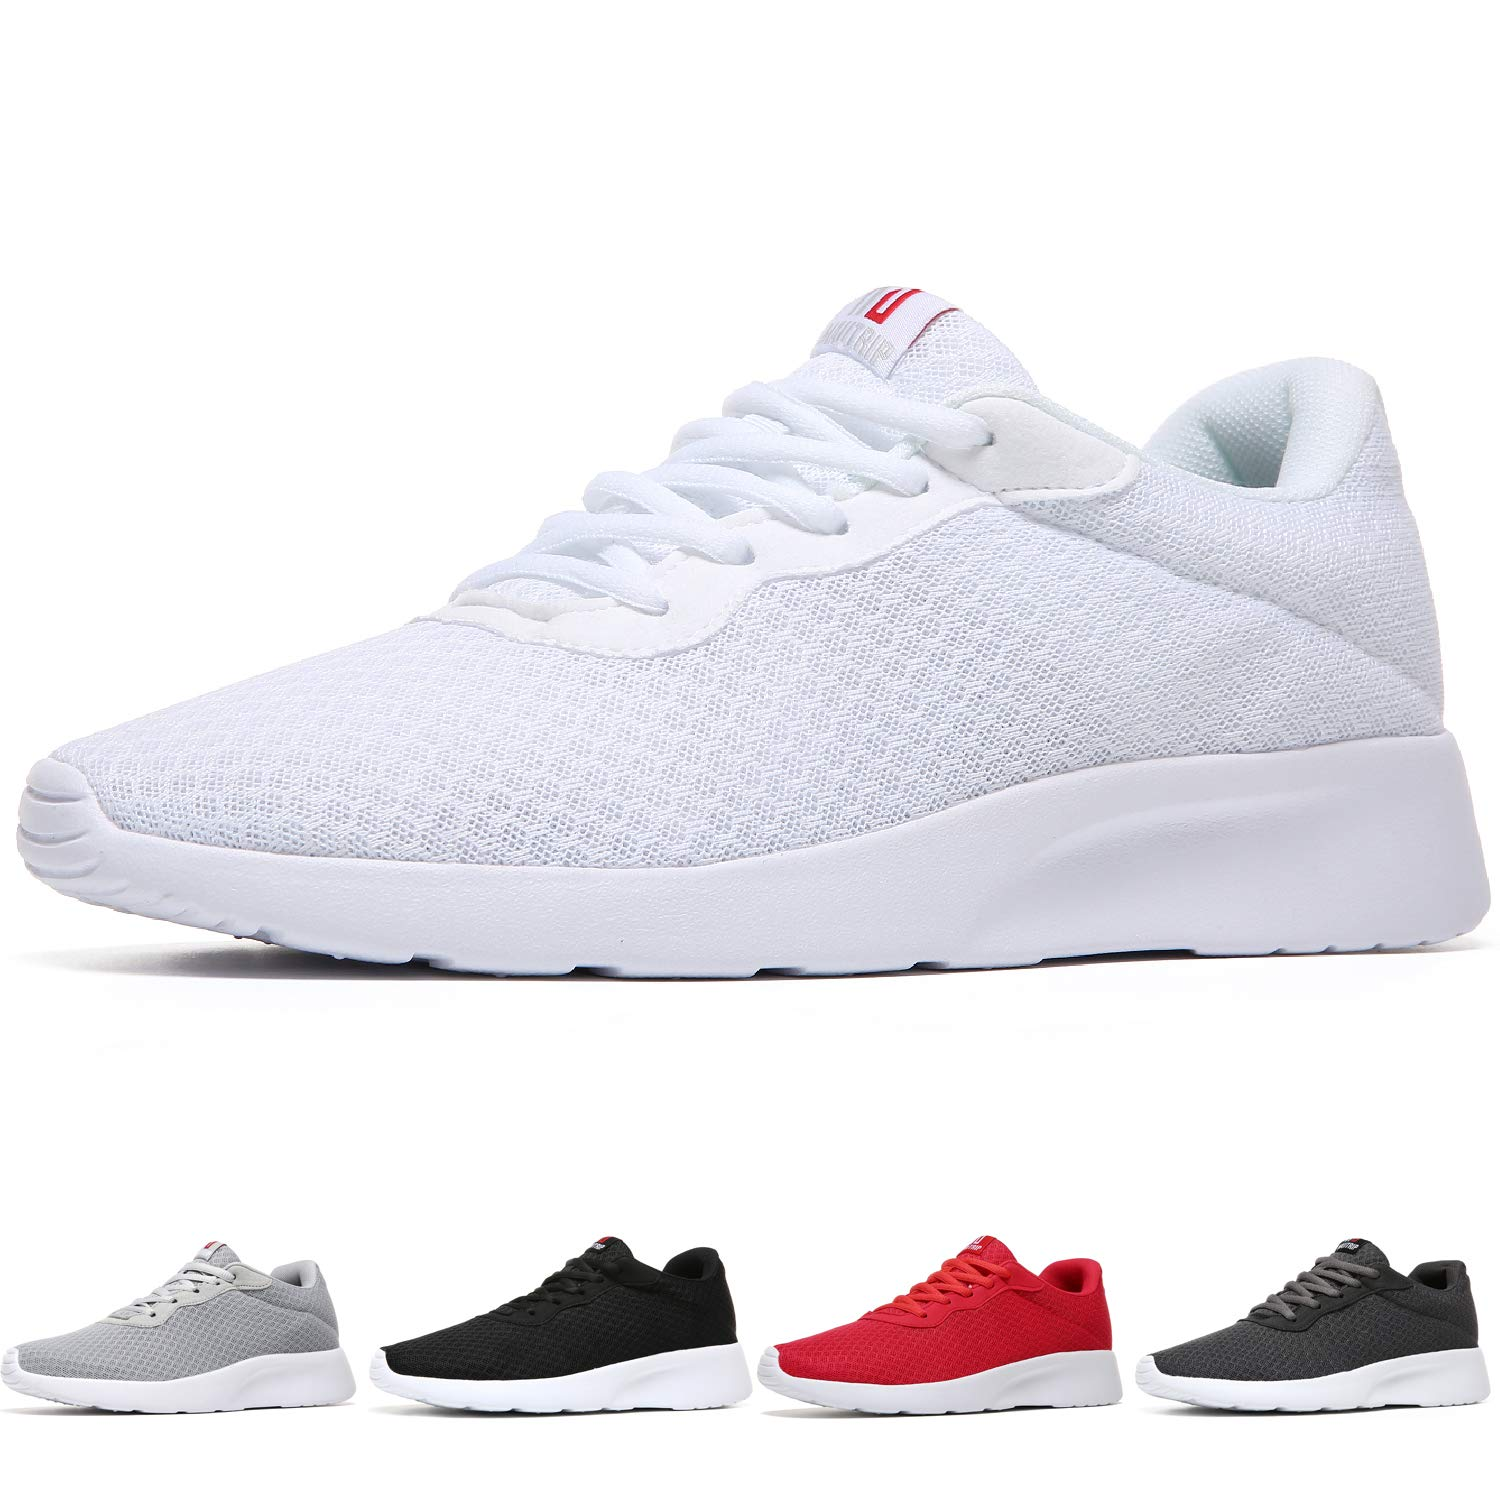 MAIITRIP Men's Running Shoes Sport Athletic Sneakers,White/White,Size 7